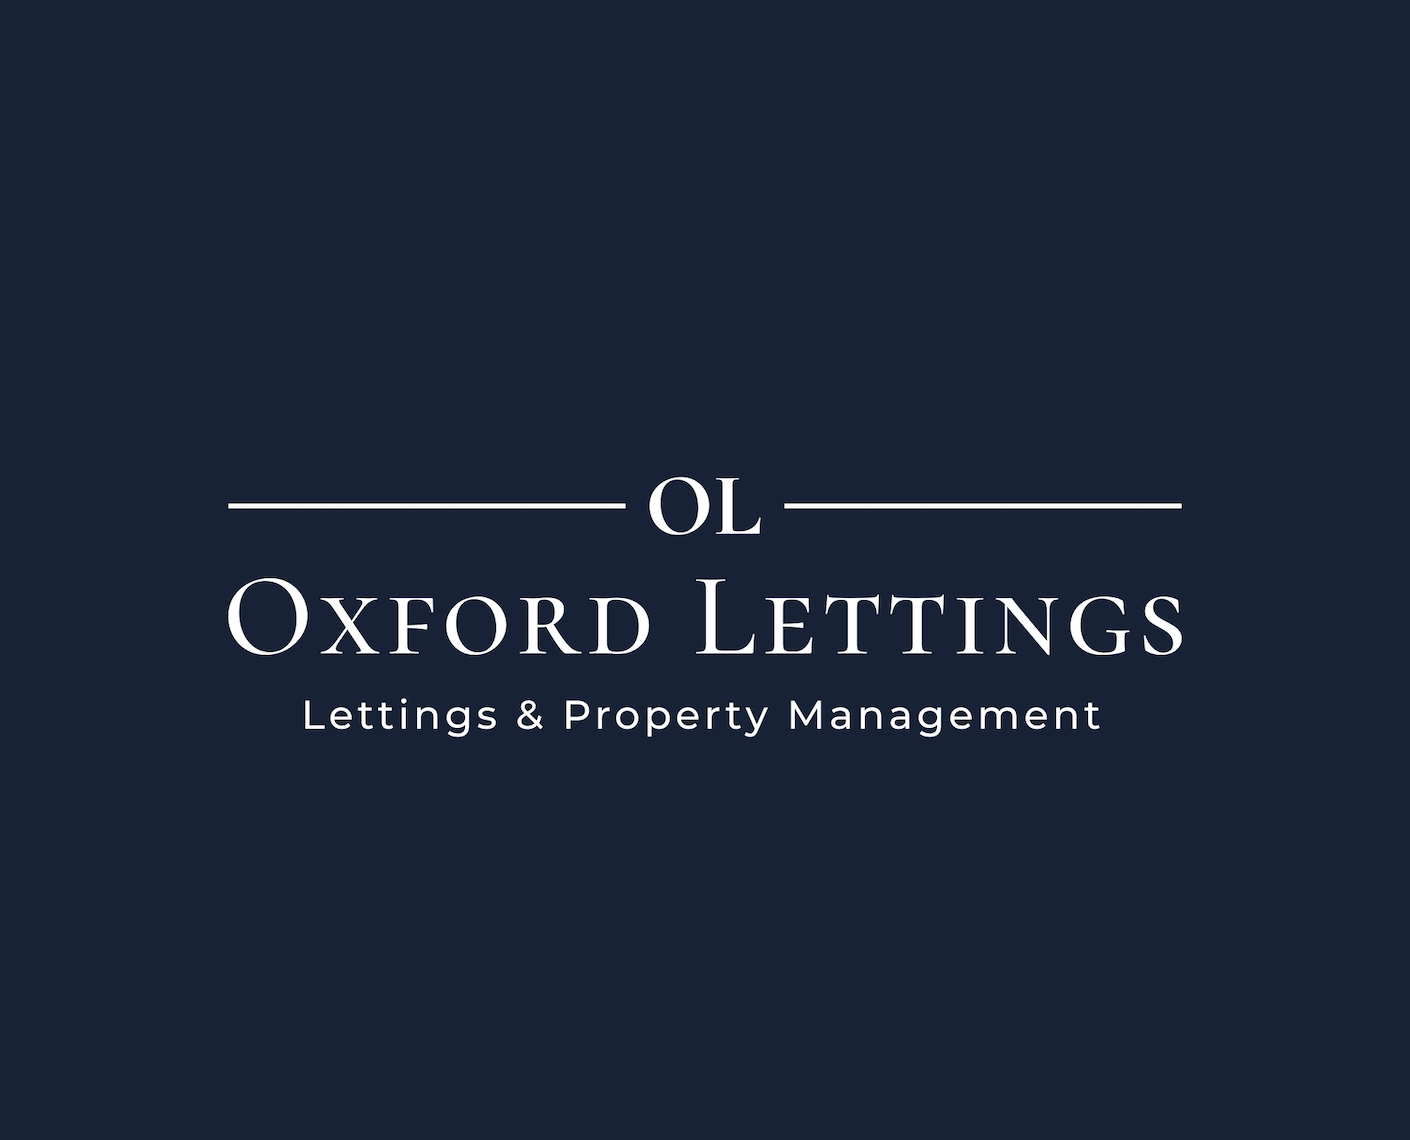 Oxford Lettings